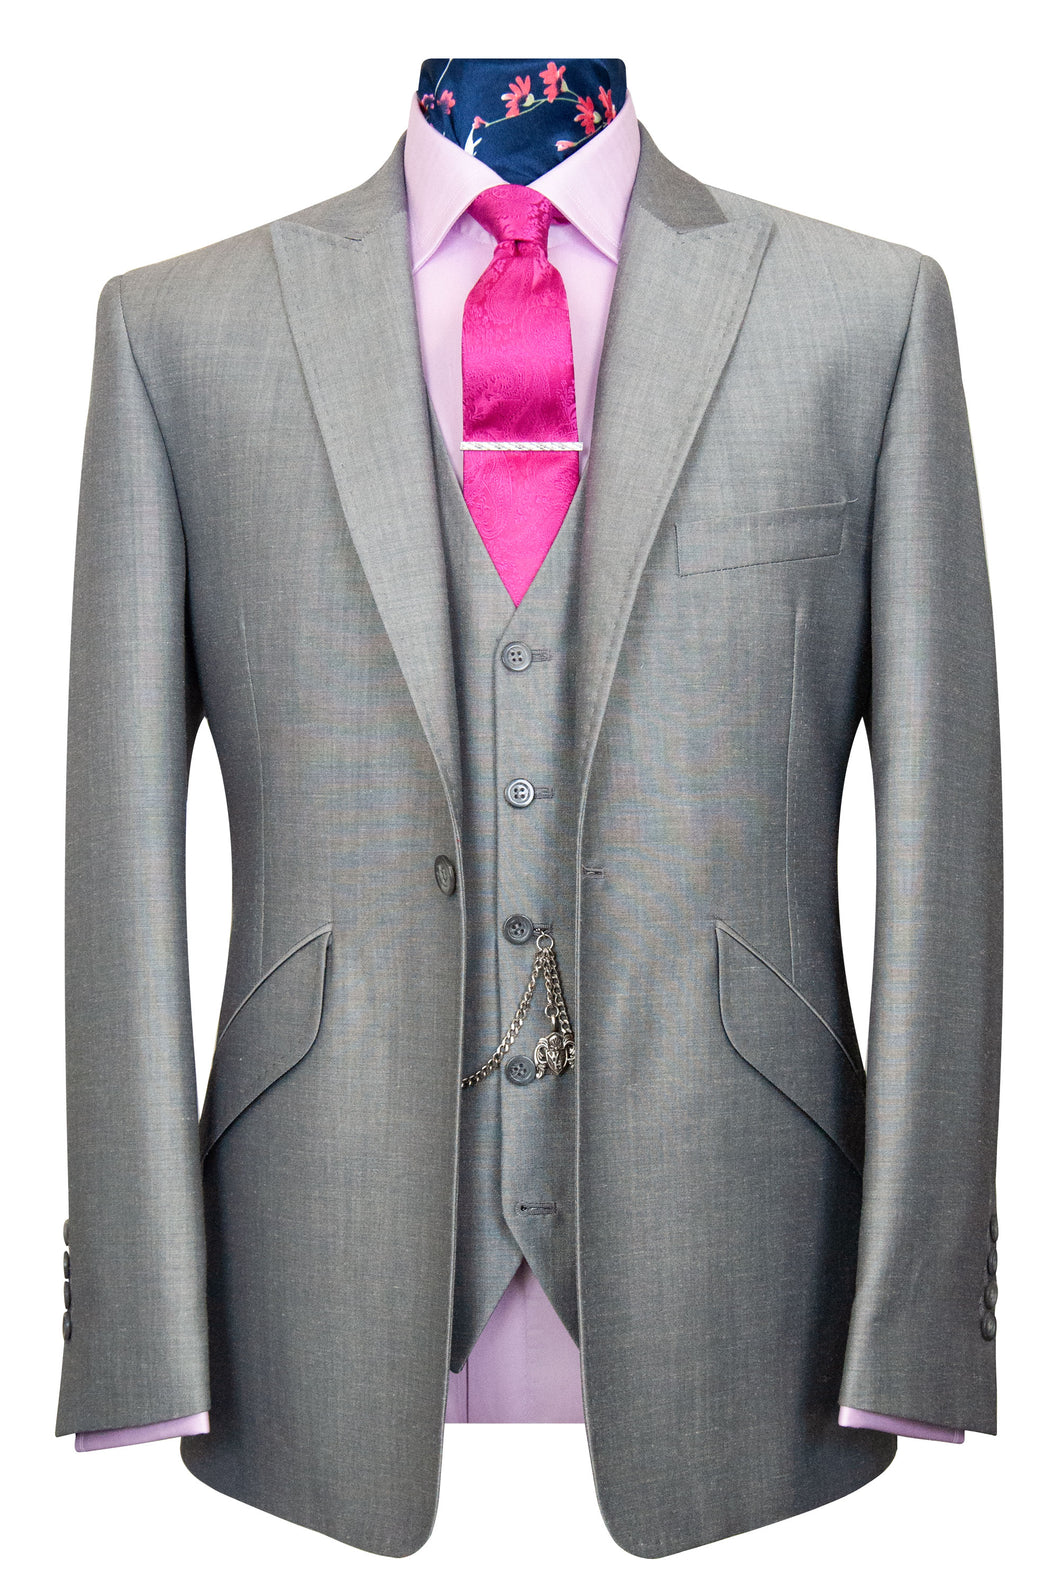 The Alvarez Silver Shot Suit